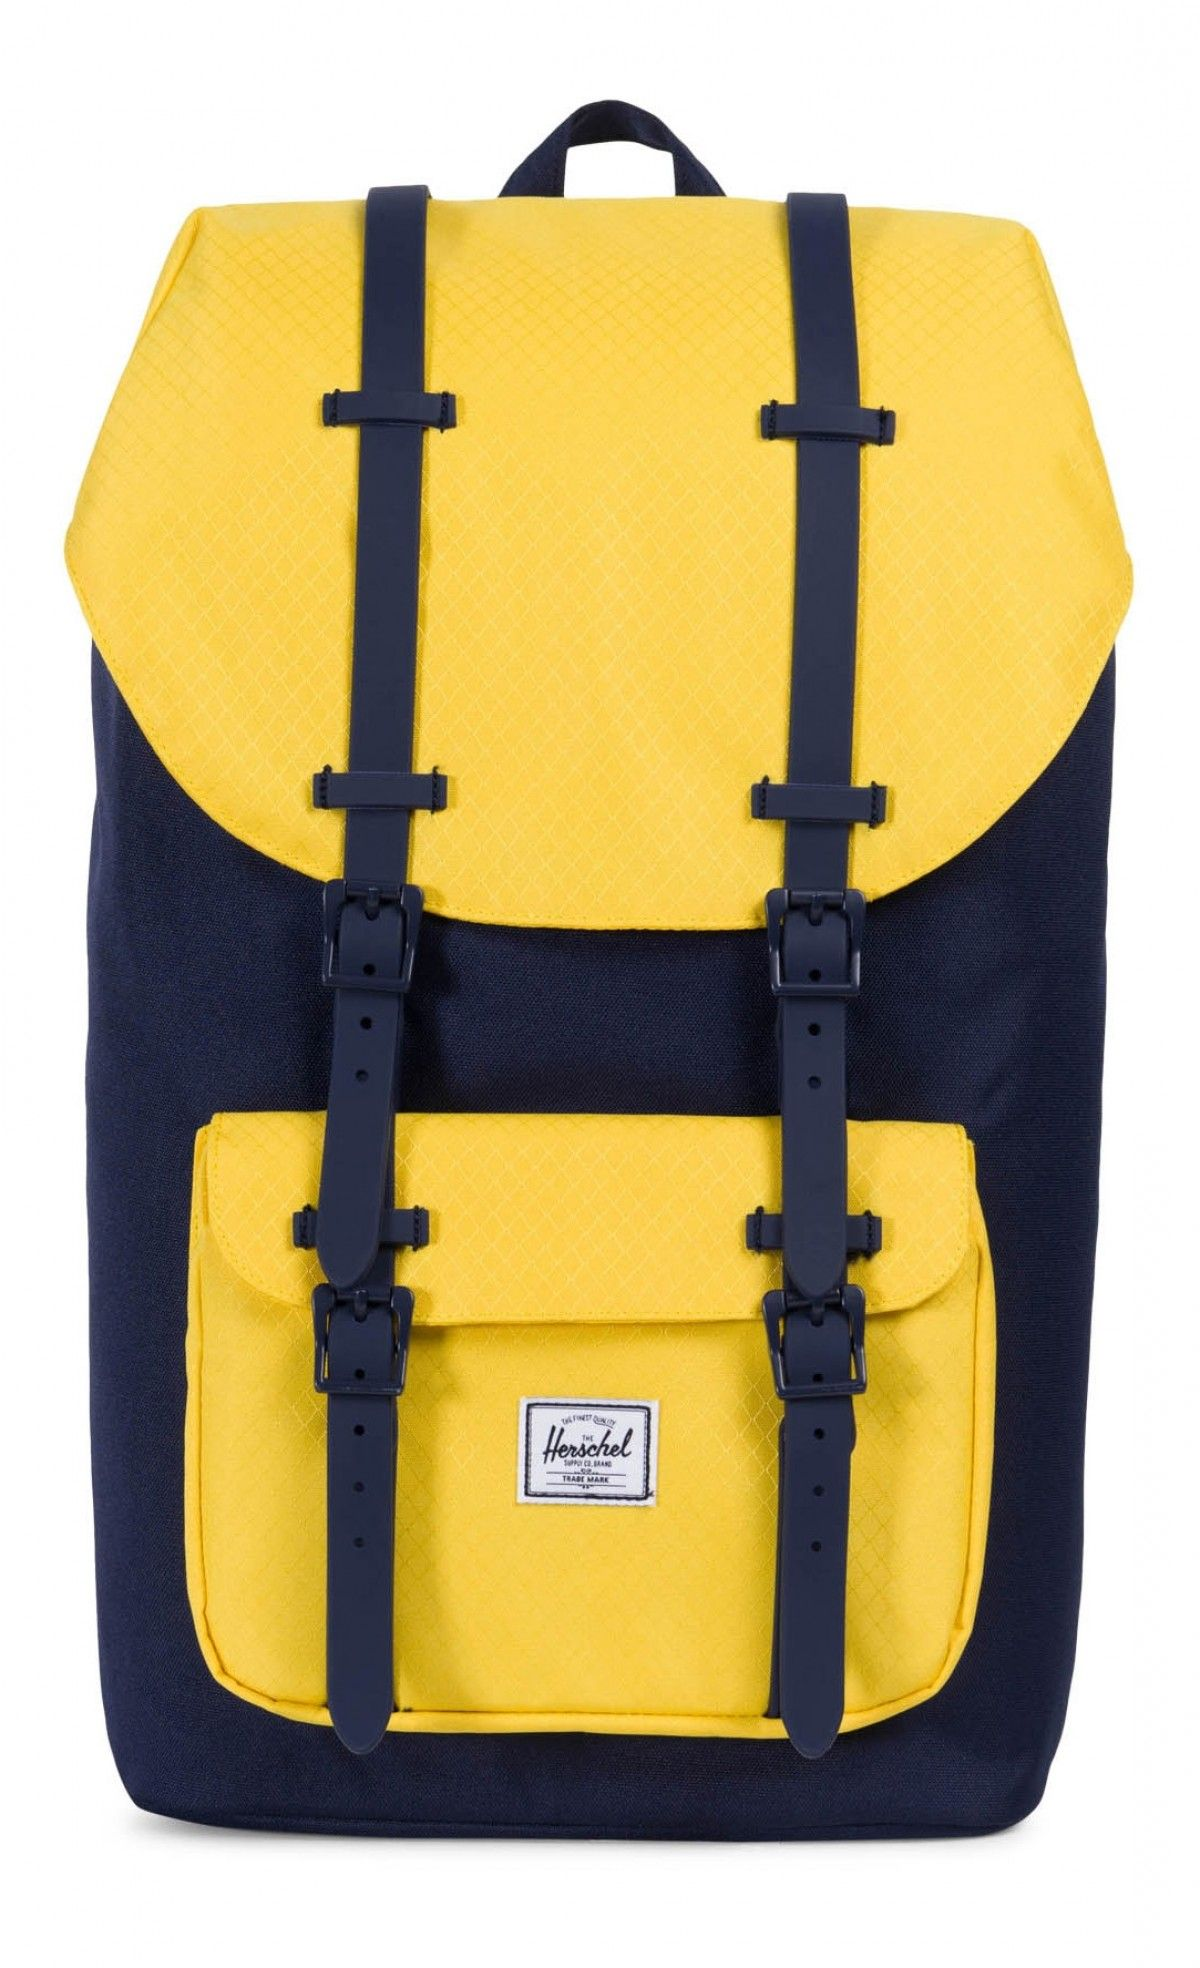 cda8a5450c54 Herschel Little America Backpack 600D Poly Peacoat Cyber Yellow ...